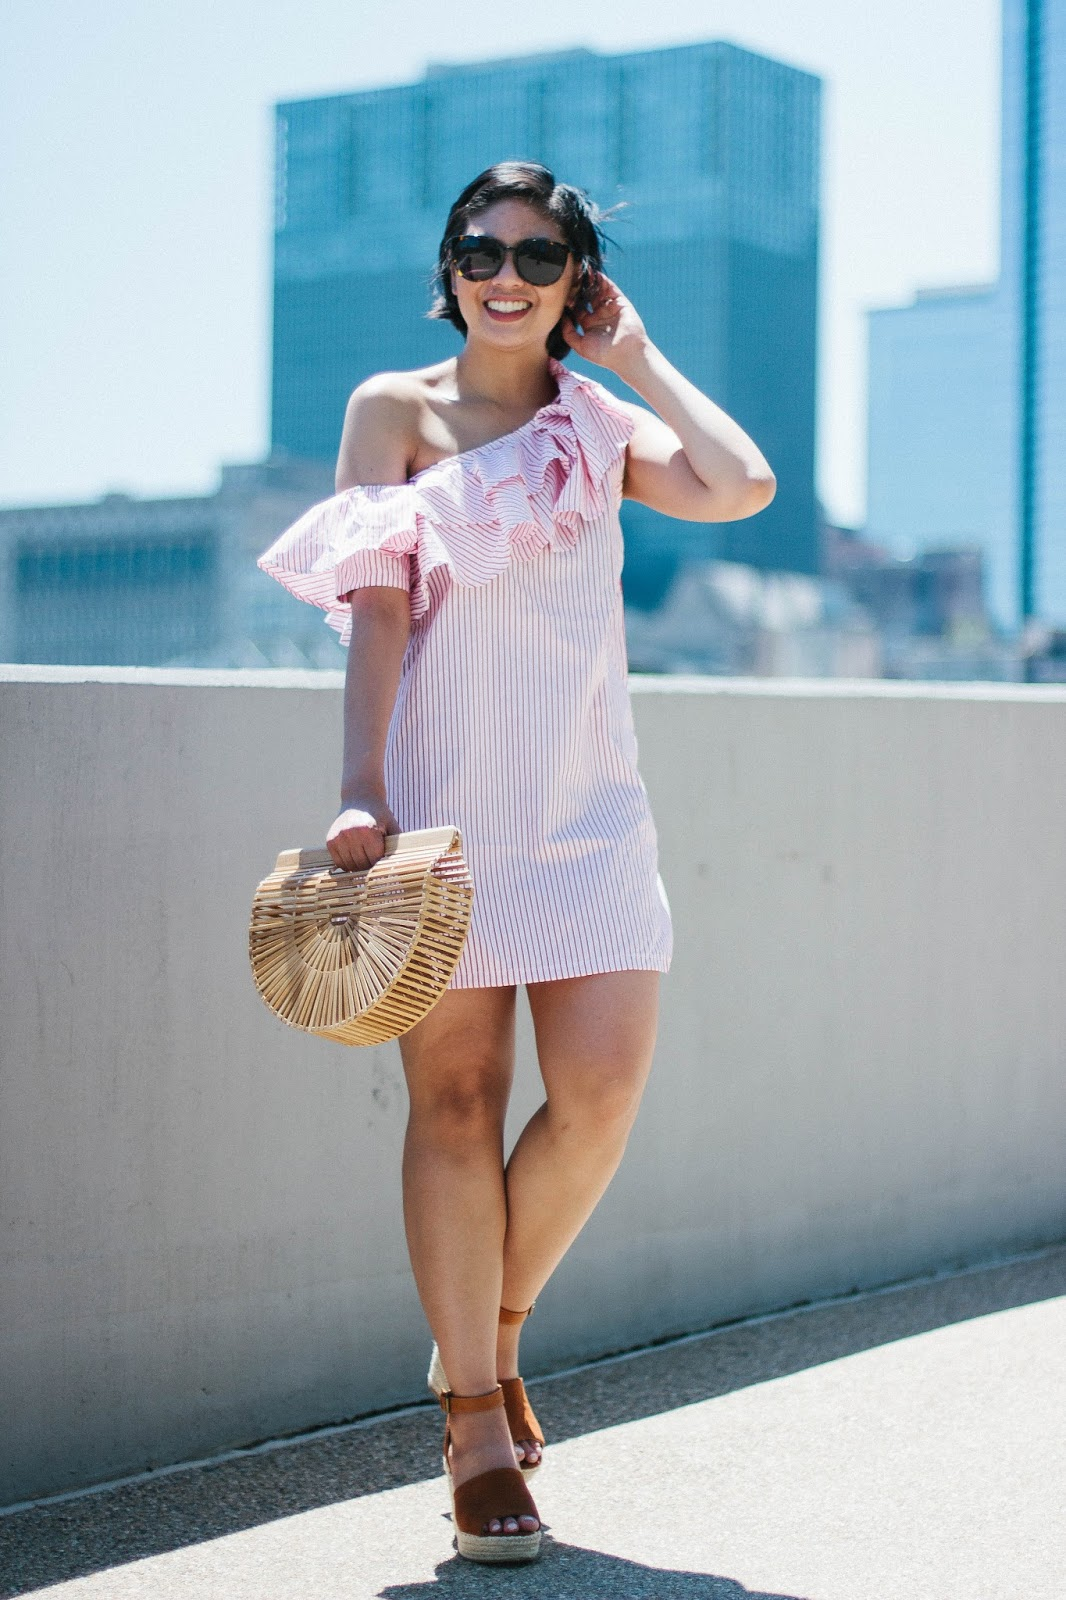 The perfect dress for a hot summer day.